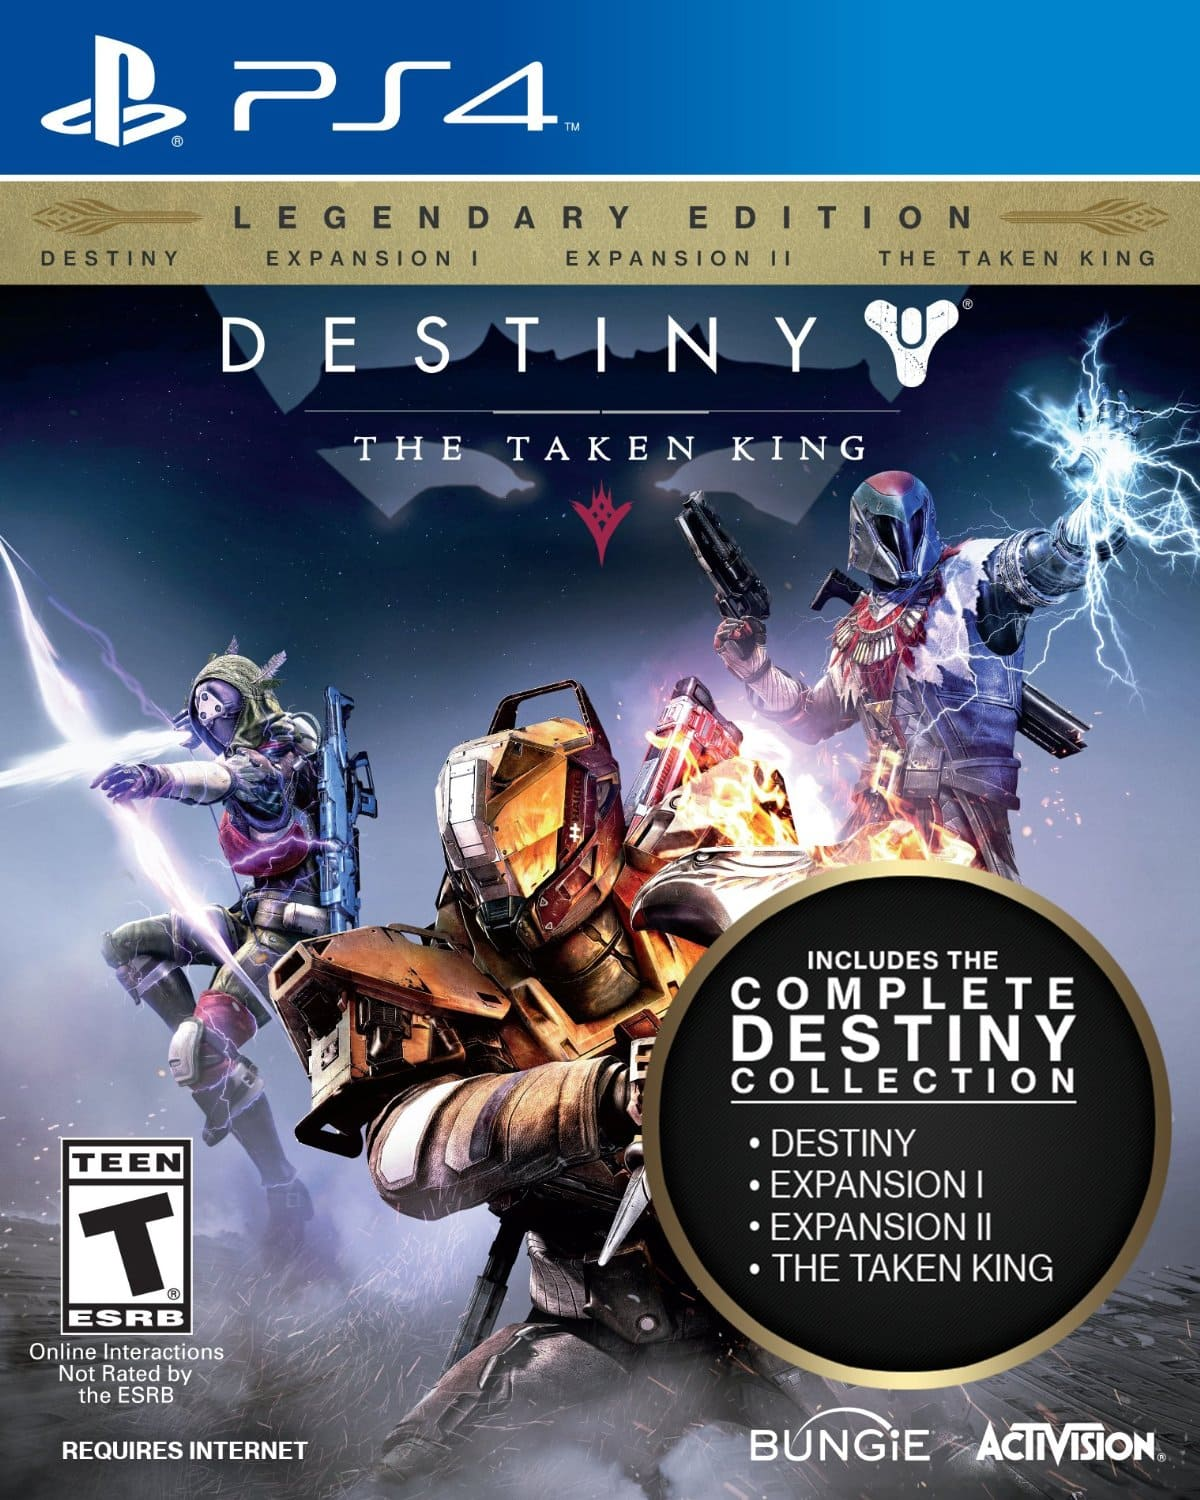 Destiny: The Taken King - Legendary Edition - Xbox One/PS4 - $29.99 with Amazon Prime